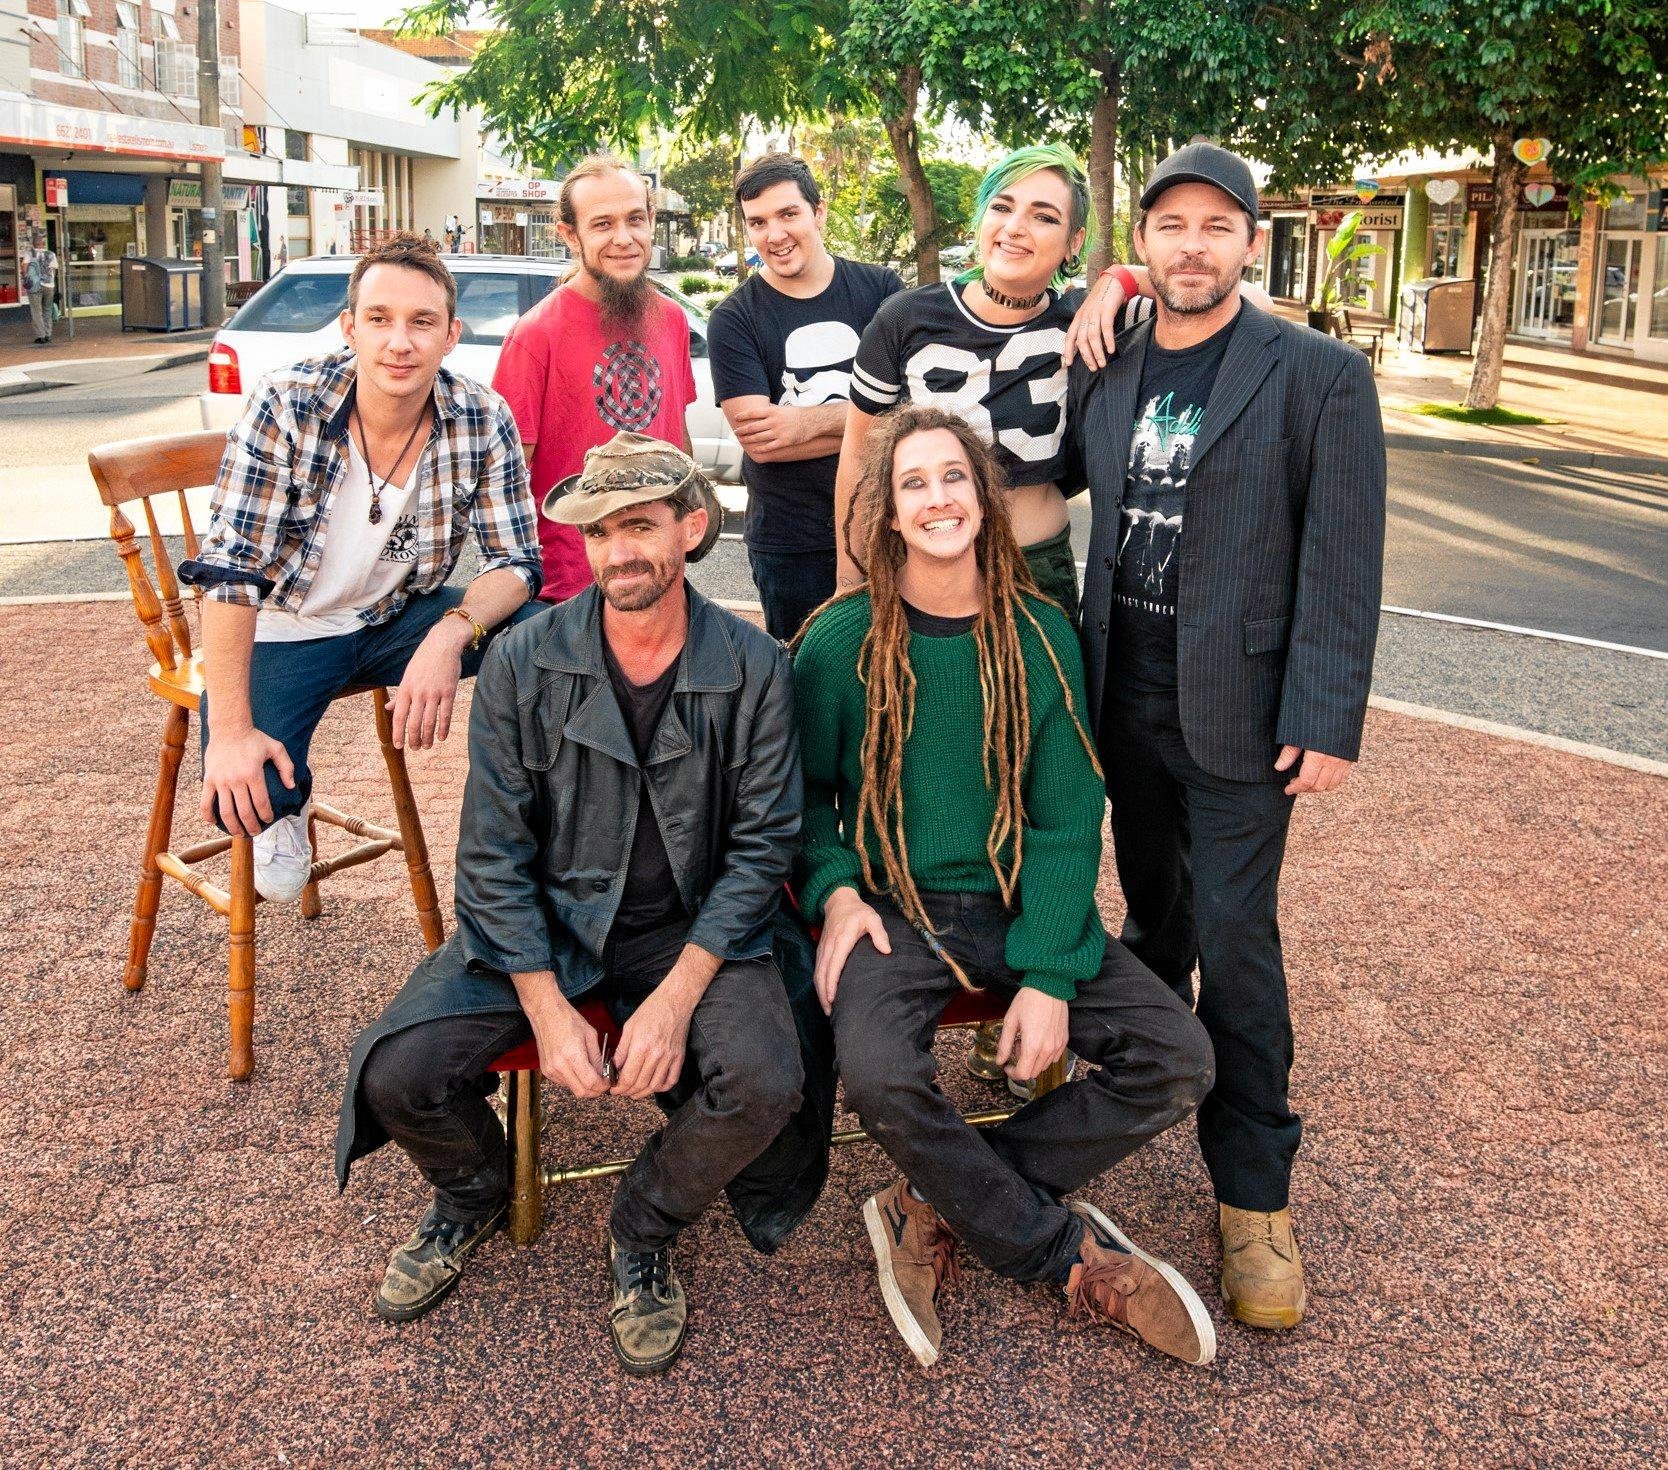 TROUPE: The Humans of Lismore are a comedy rock band.